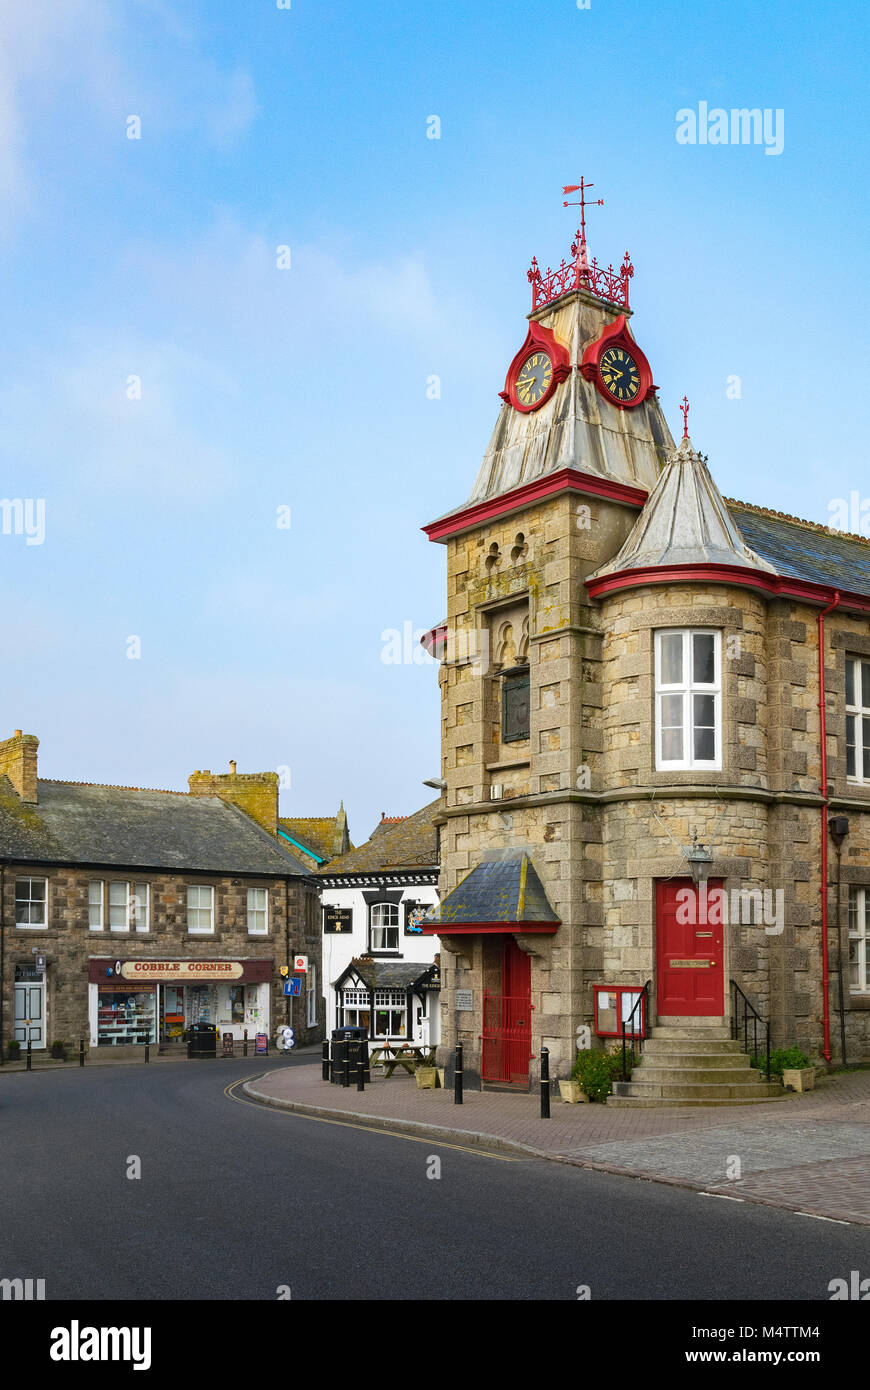 the town hall in the ancient township of marazion in cornwall, england, britain, uk. - Stock Image